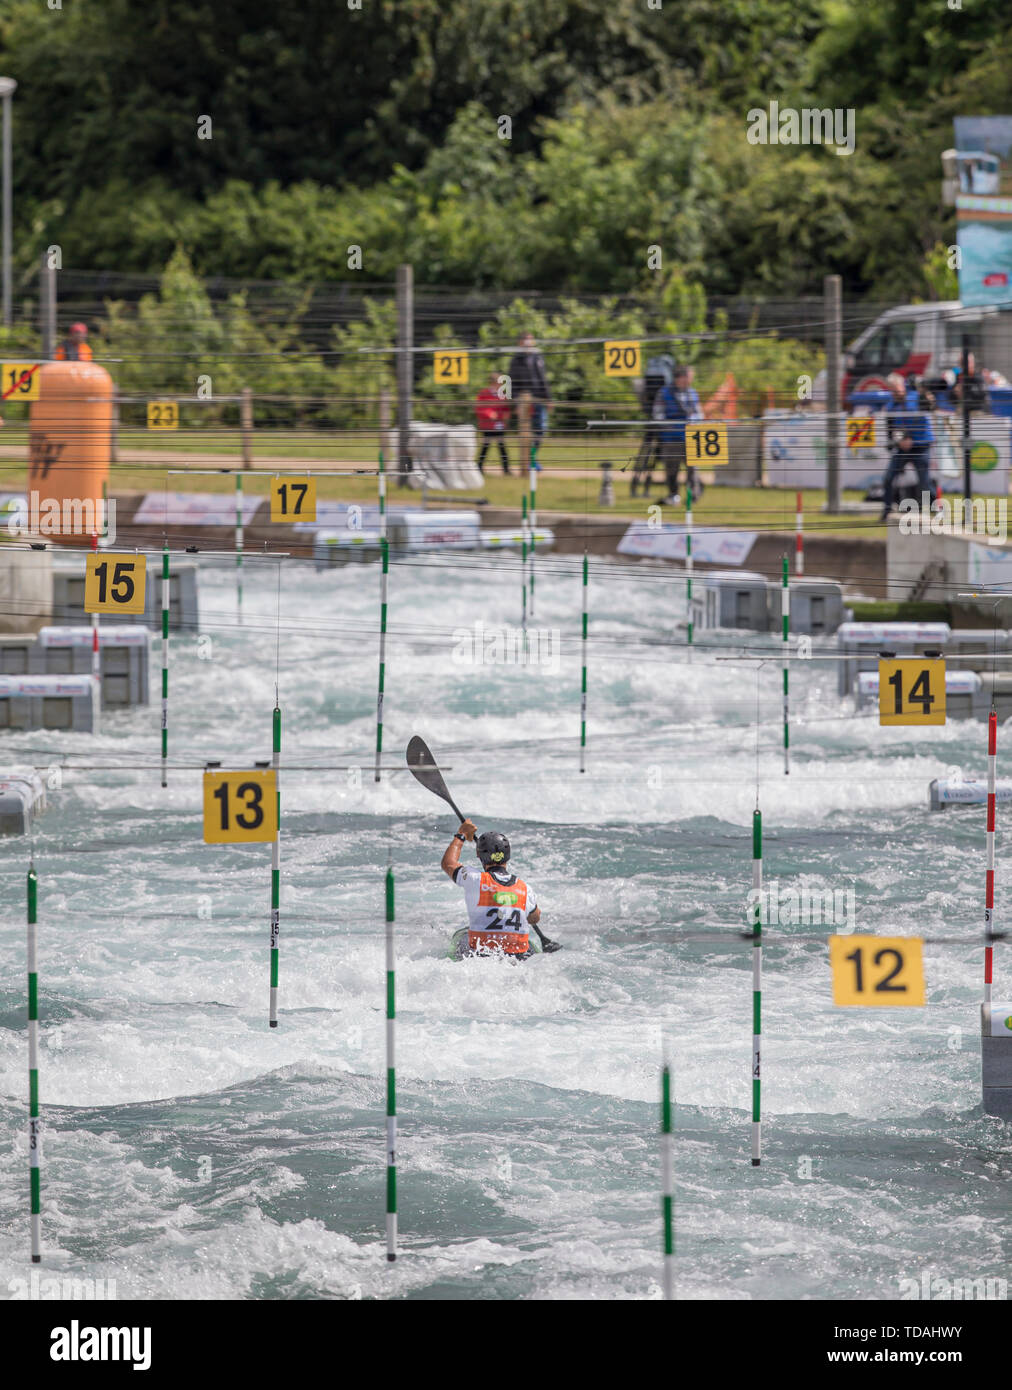 Lee Valley Whitewater Centre, UK. 14th June, 2019.  ICF Canoe Slalom World Cup Series; Timothy Anderson (AUS) competing in the Men K1 Heats Run 1 Credit: Action Plus Sports Images/Alamy Live News - Stock Image